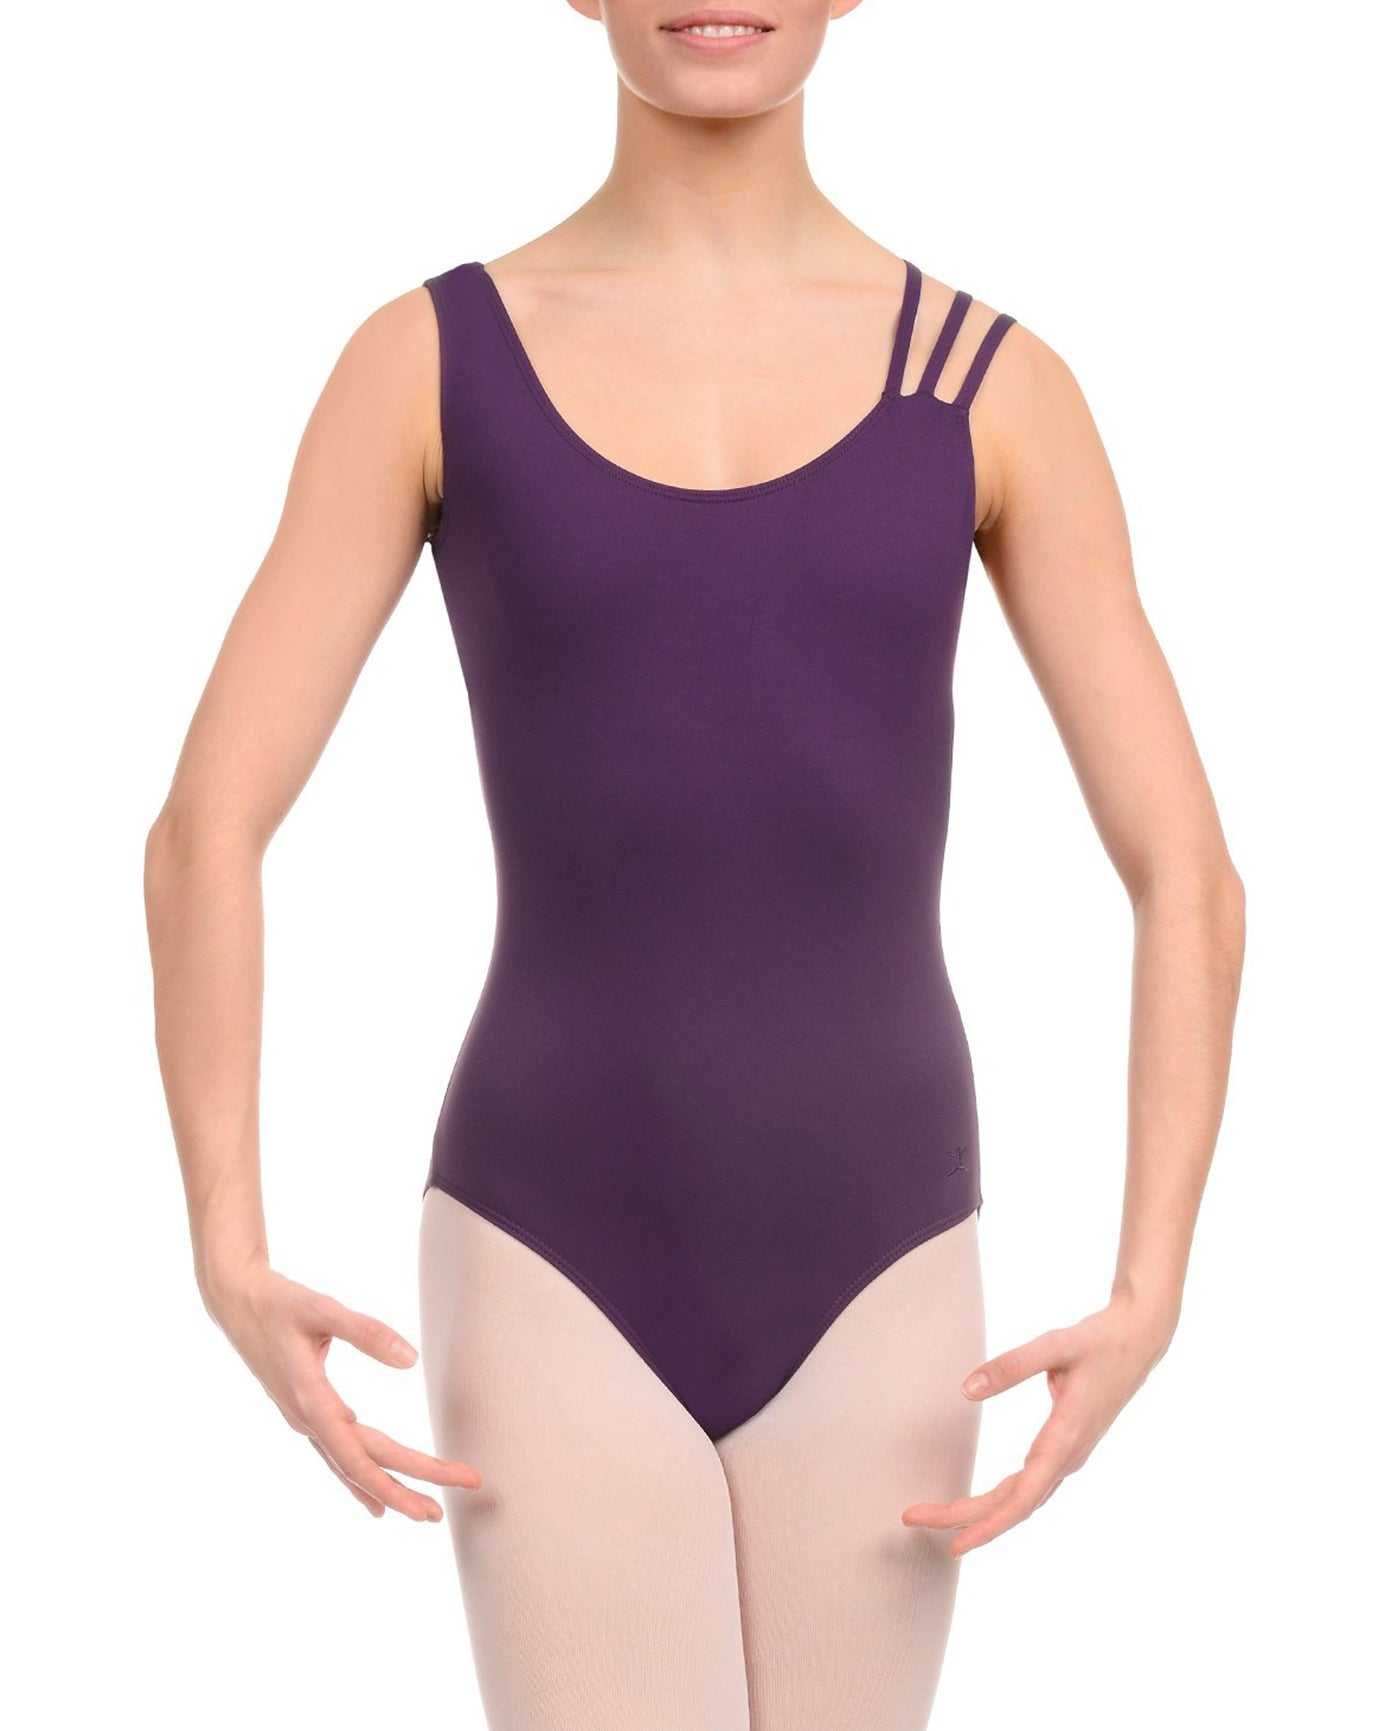 35d1f5286 NYCB Strappy Leotard